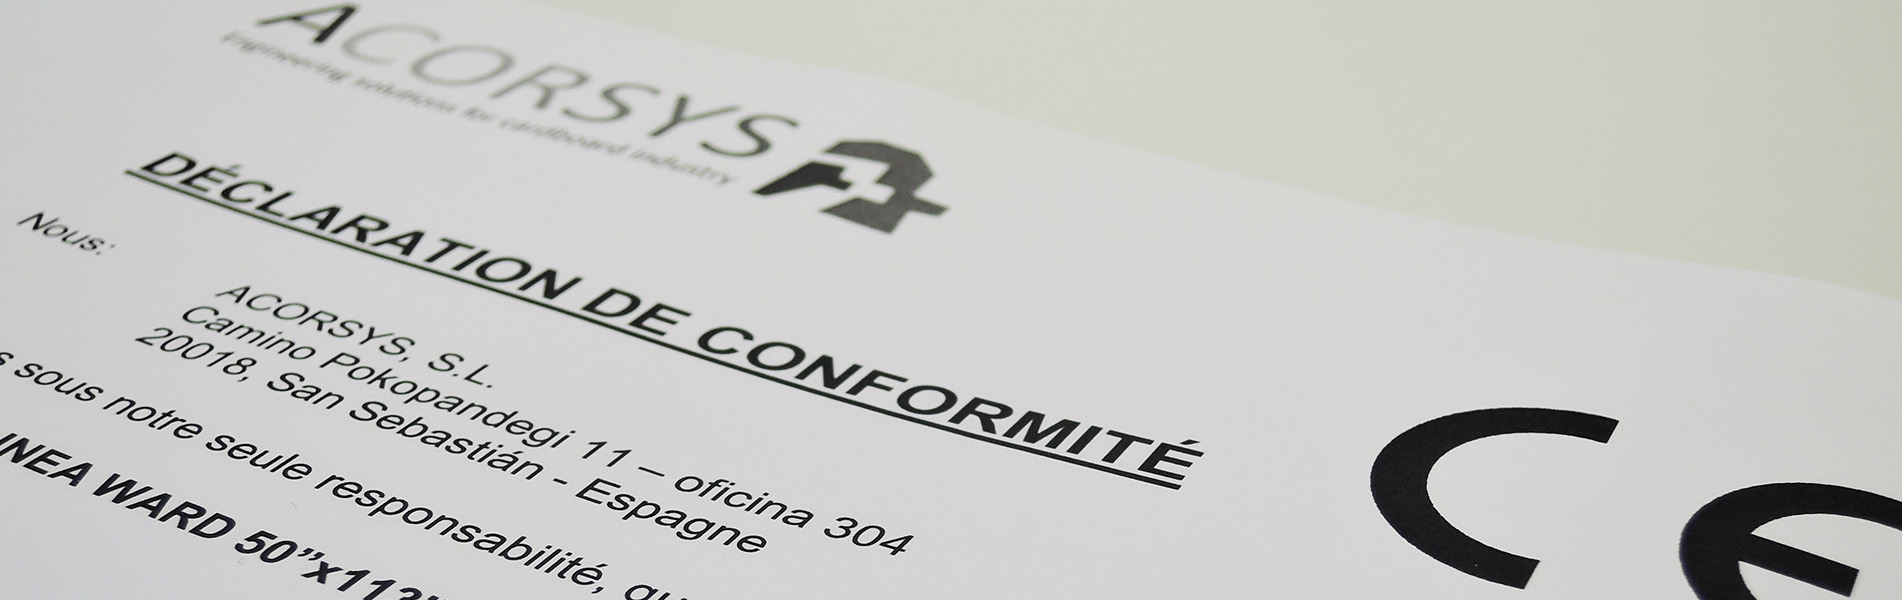 Acorsys offersupdate and adaptation ofcorrugatedmachines according to the CE standards